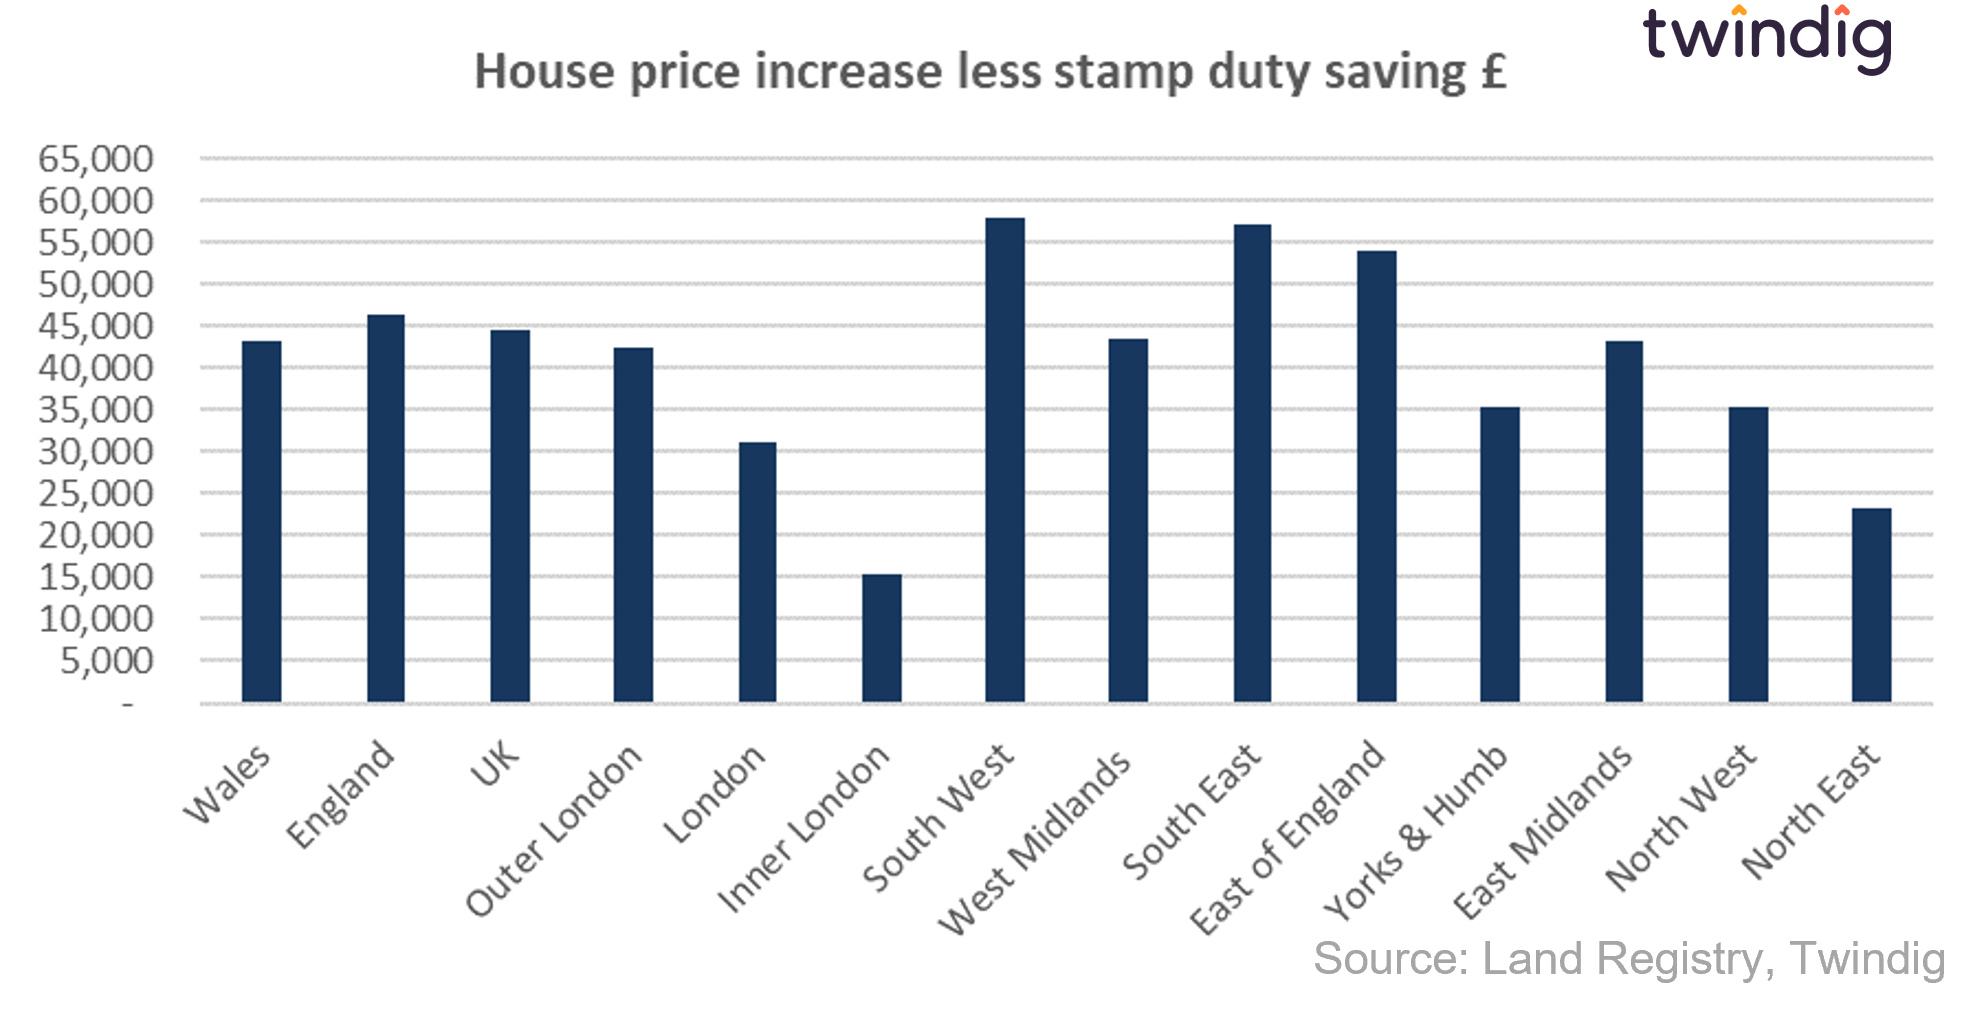 House prices increased by more than stamp duty saving